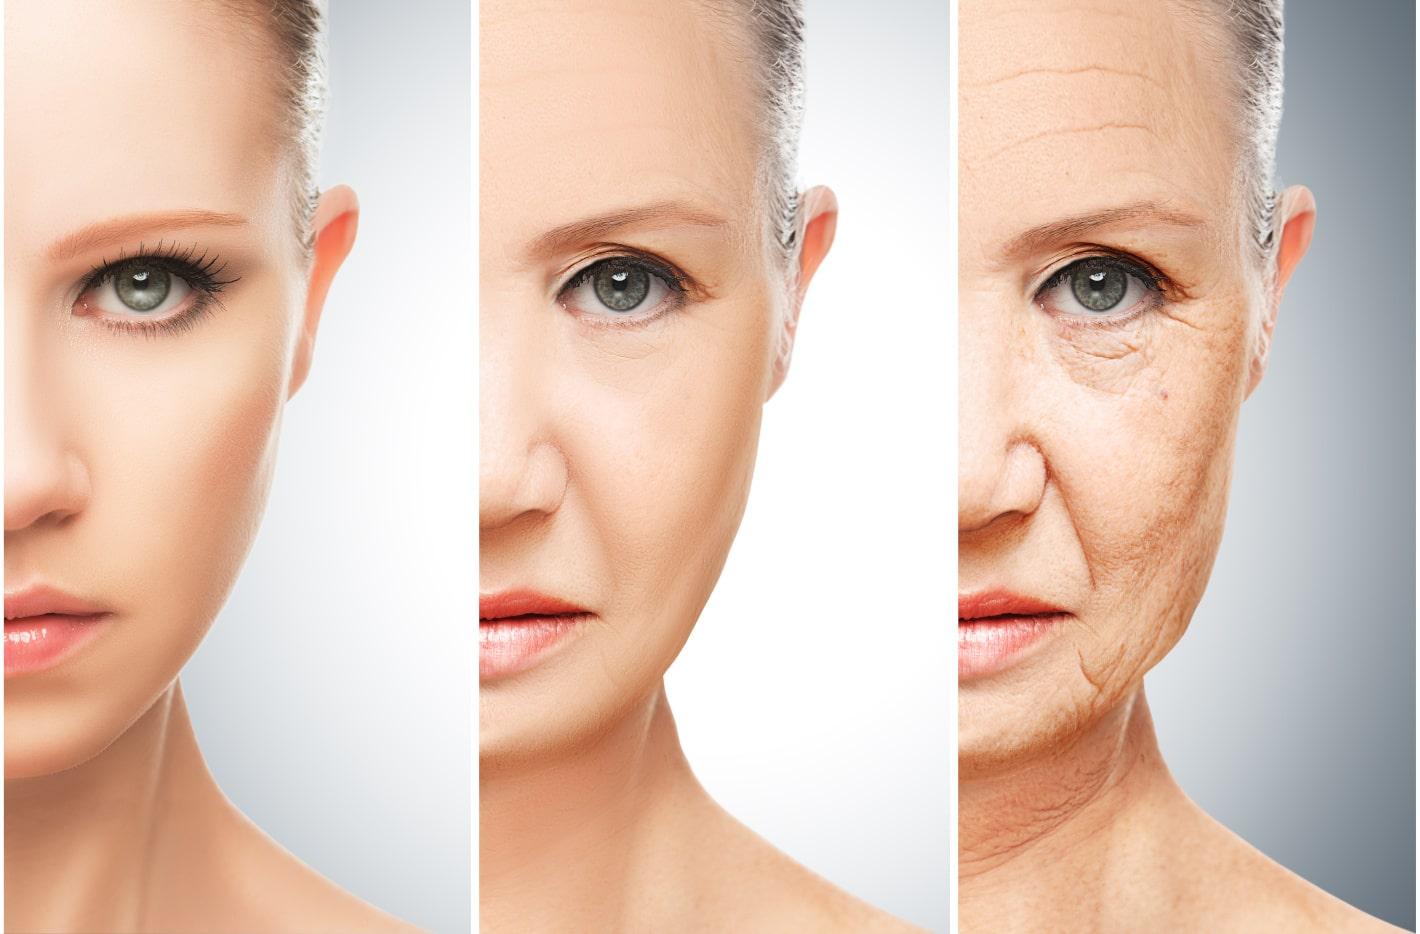 How to Slow Down Aging in Perimenopause